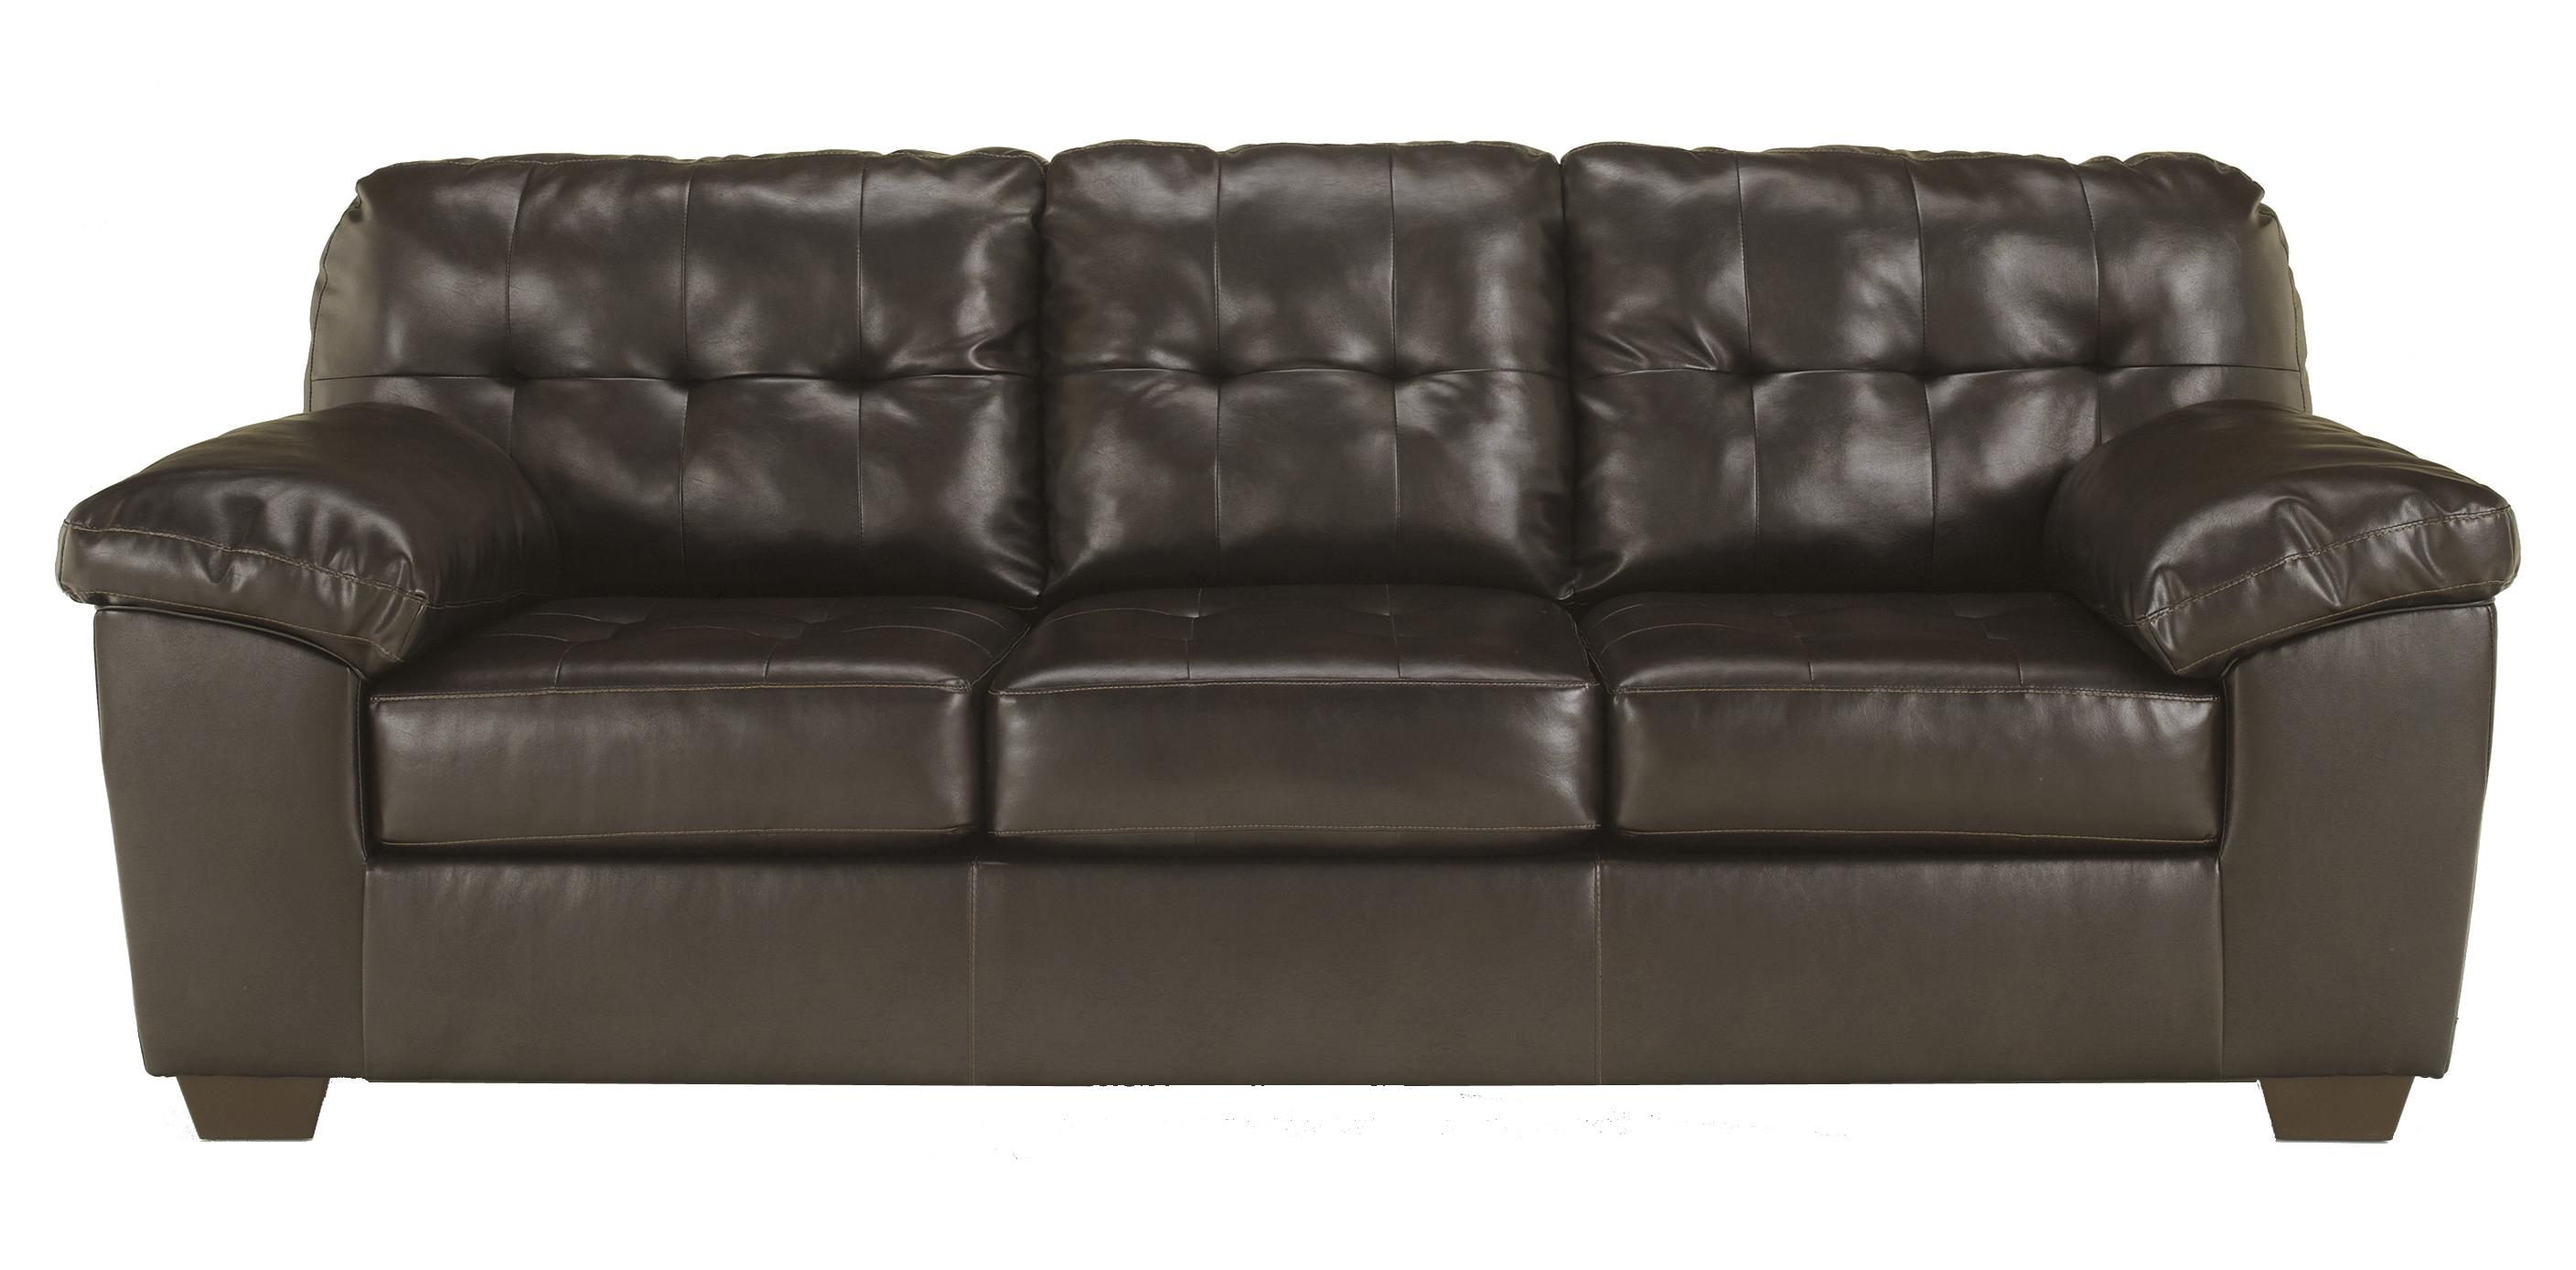 Signature design by ashley alliston durablendr chocolate for Ashley sleeper sofa